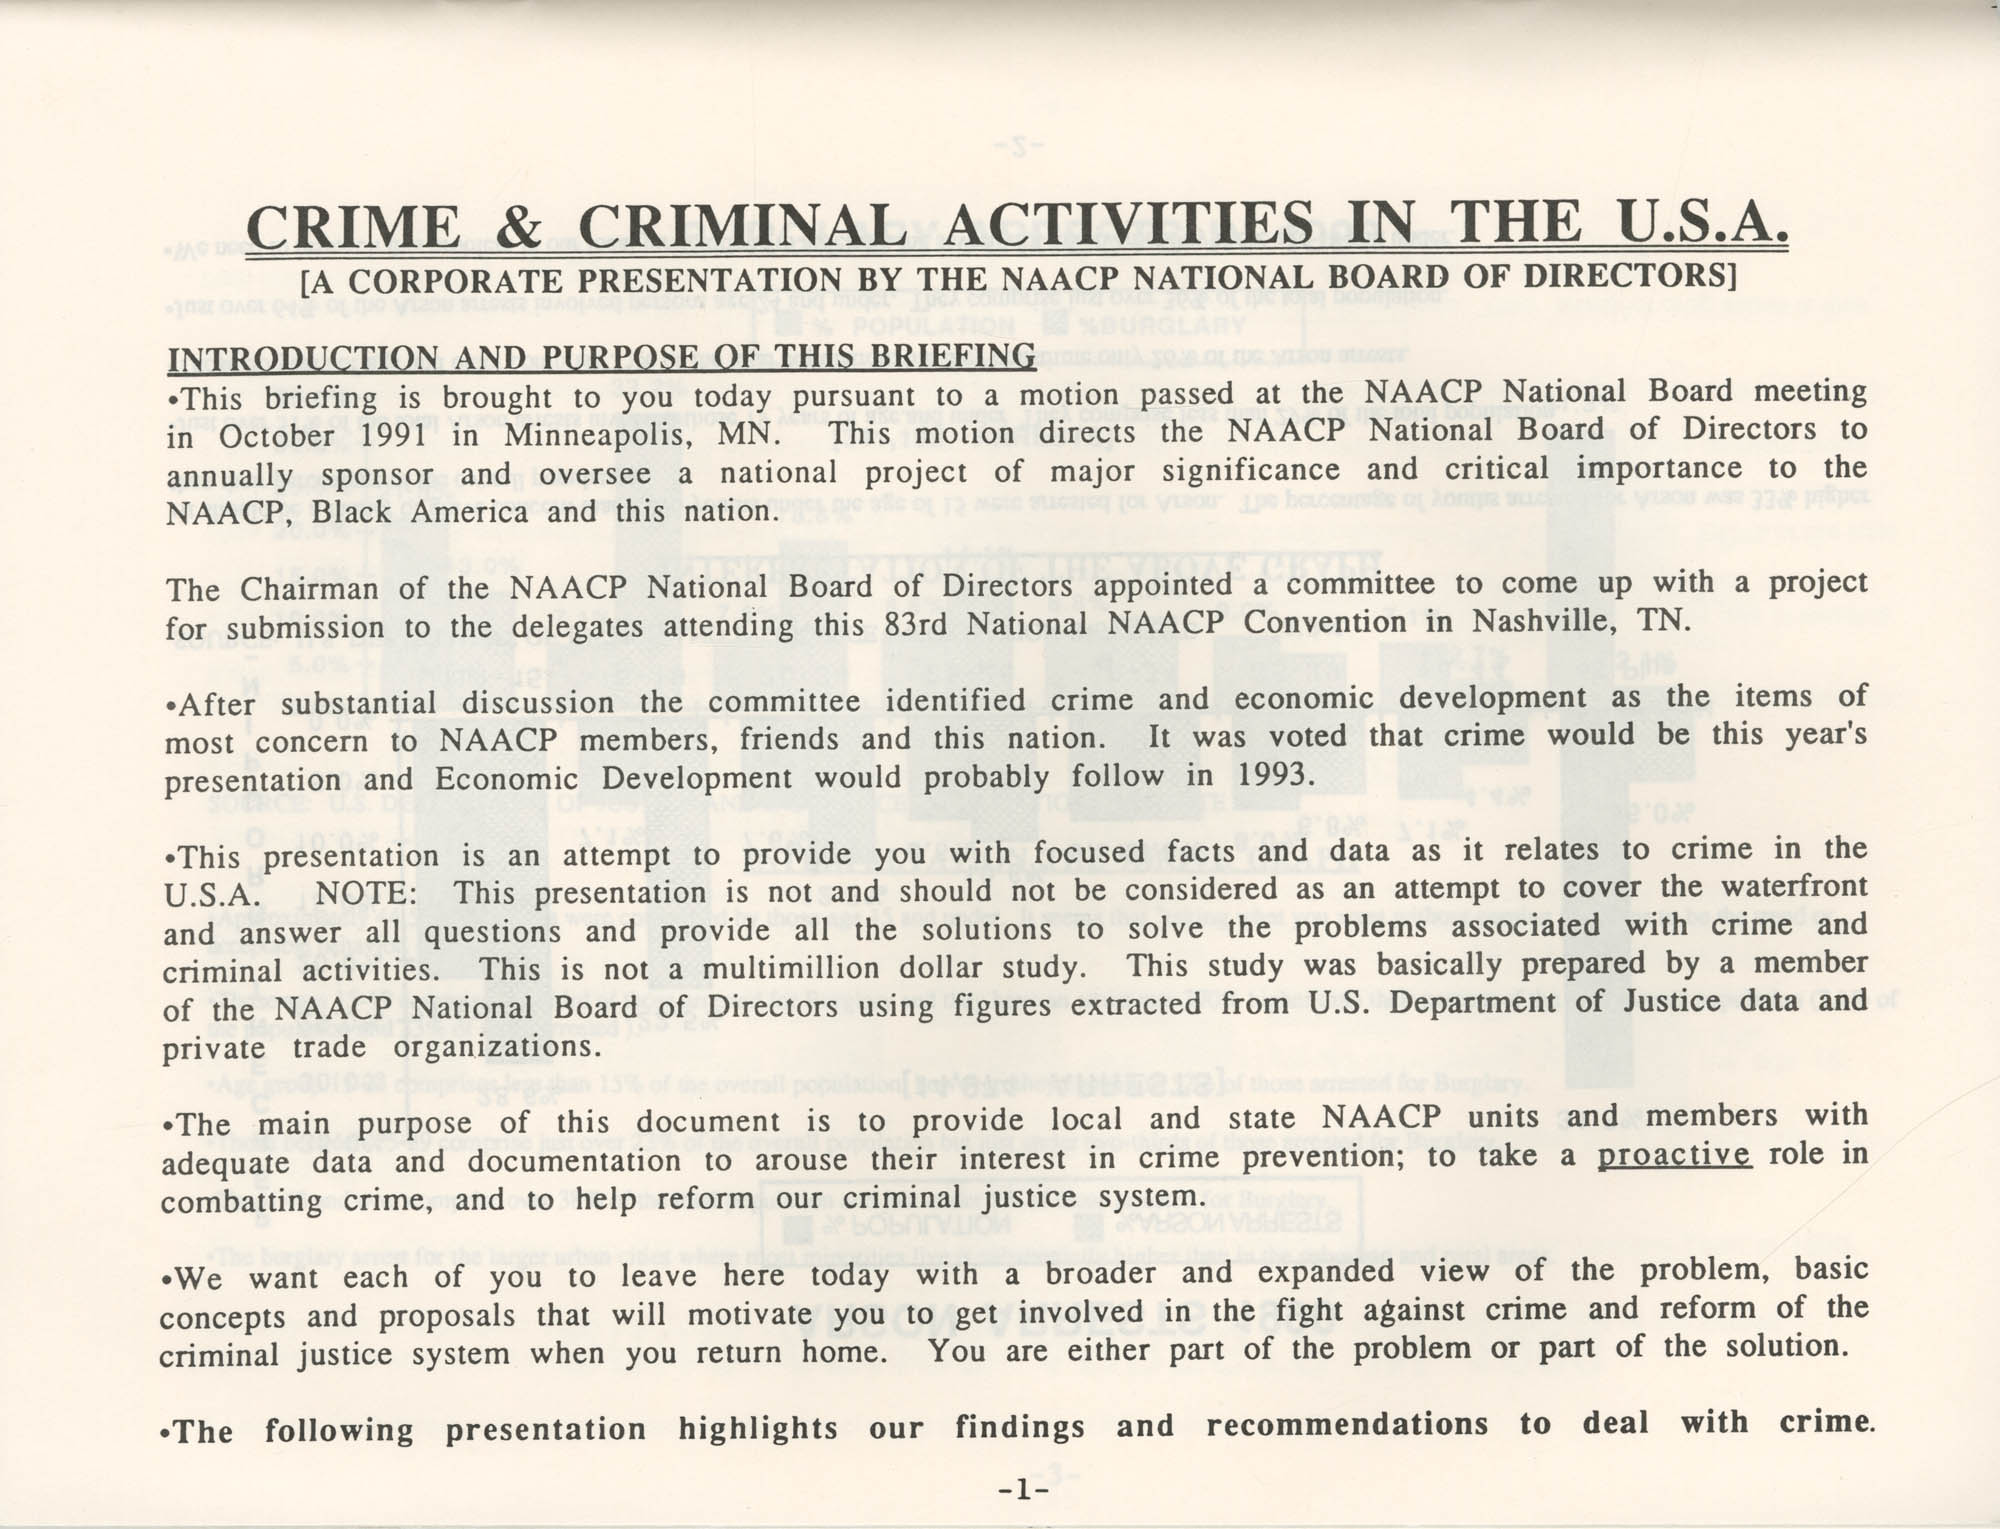 Crime and Criminal Activities in the U.S.A., NAACP National Board of Directors, Page 1